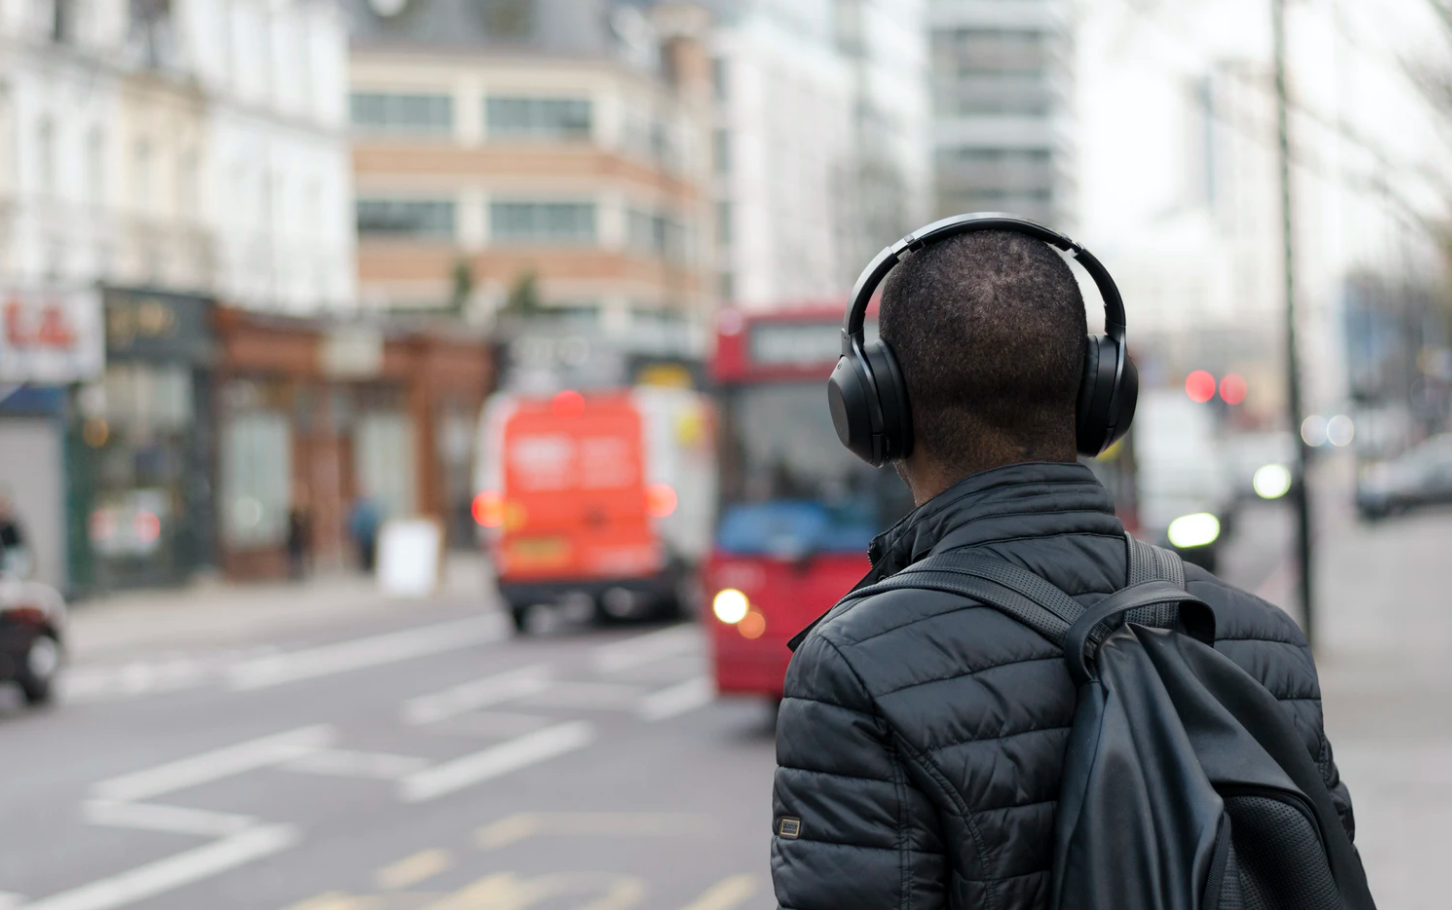 commute etiquette student wearing headphones waiting for bus